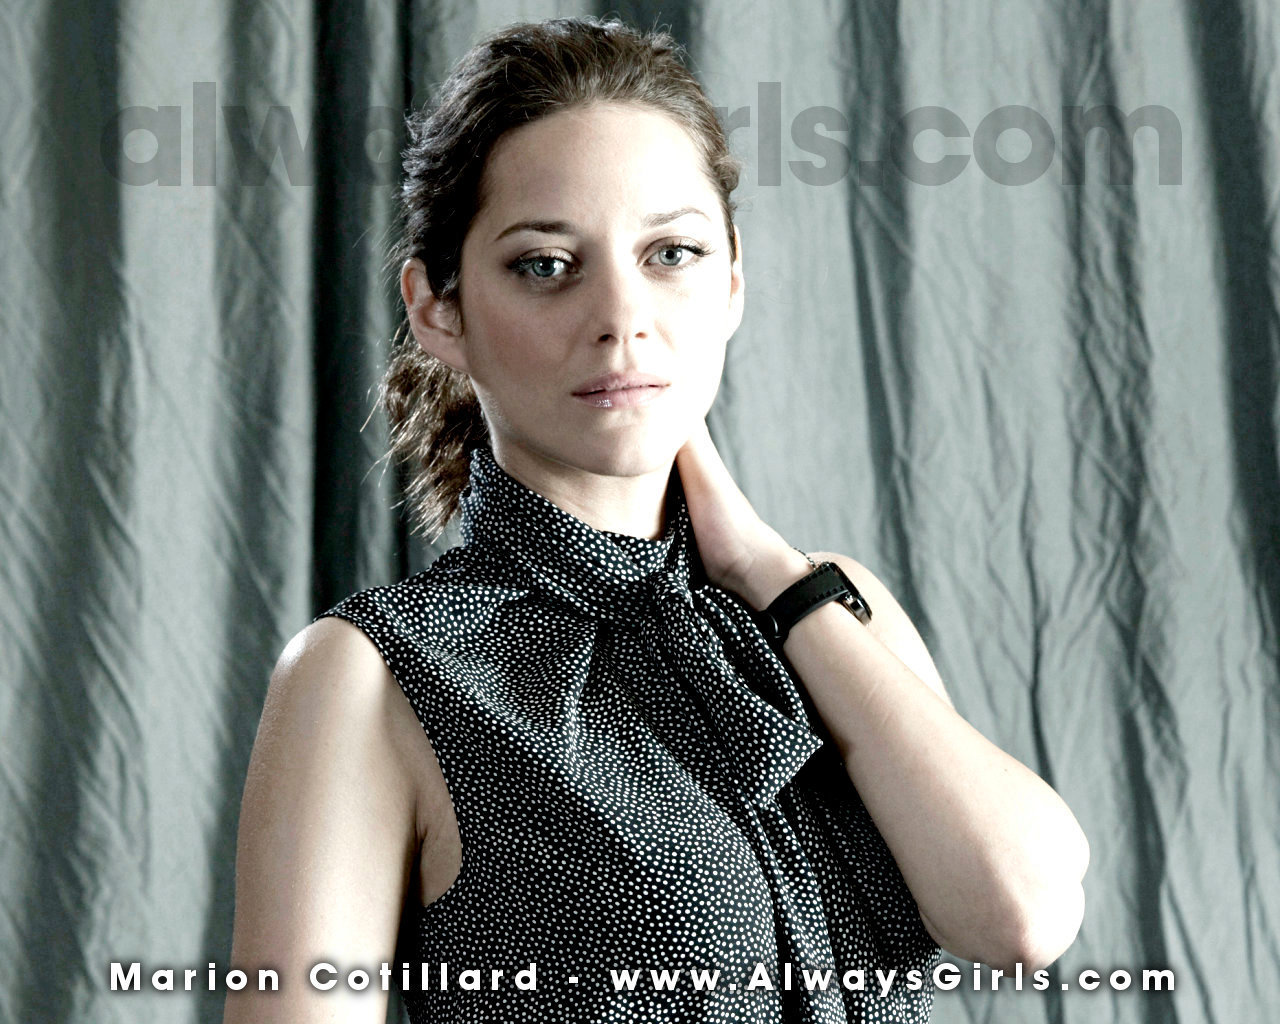 Marion Cotillard - Wallpaper Hot